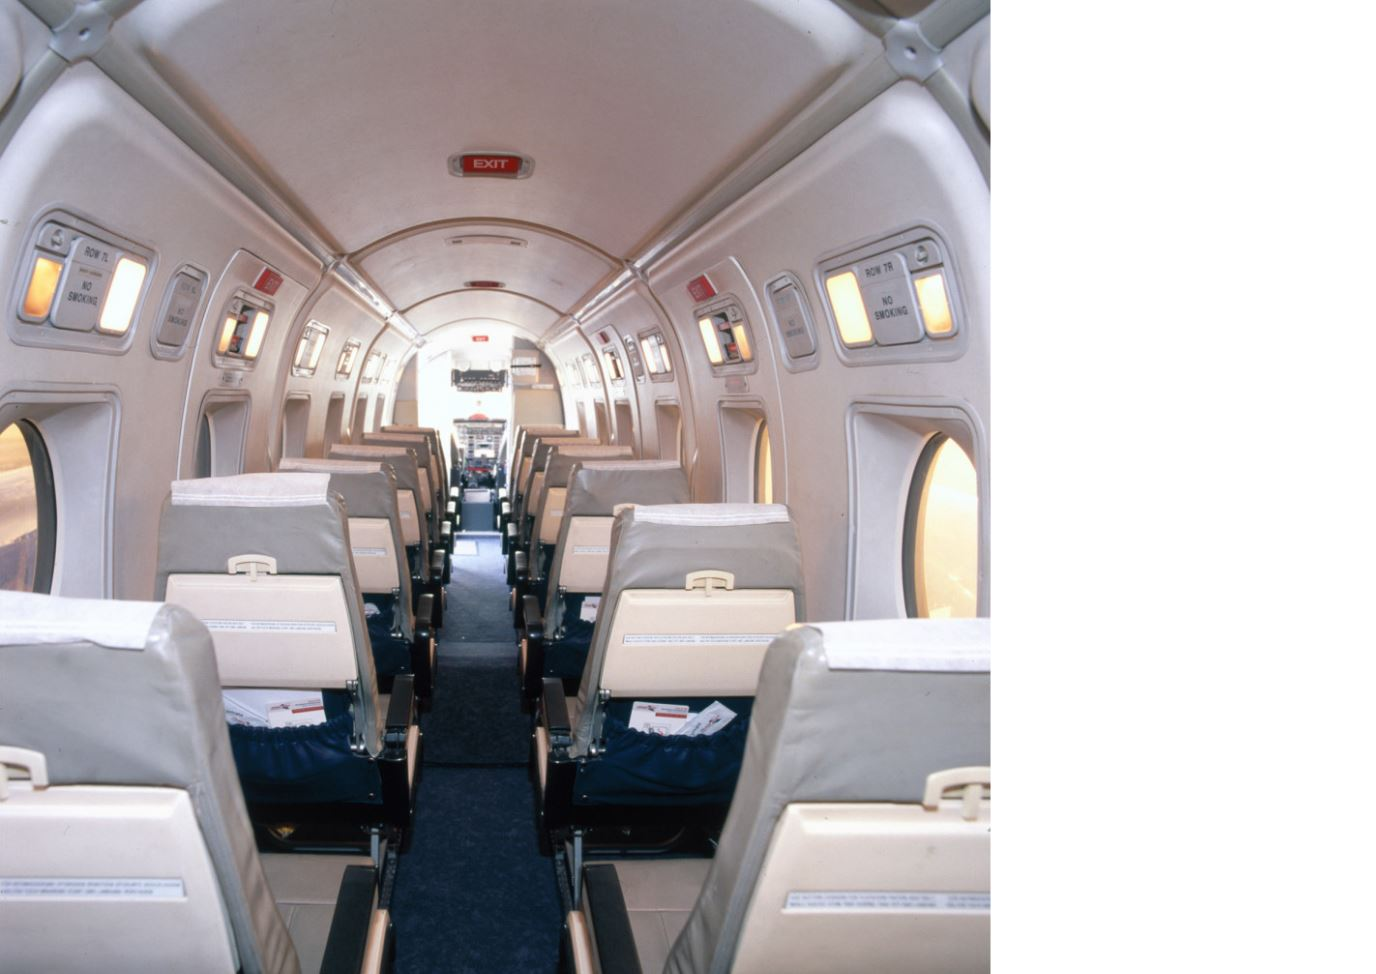 Beech 1900D interior picture